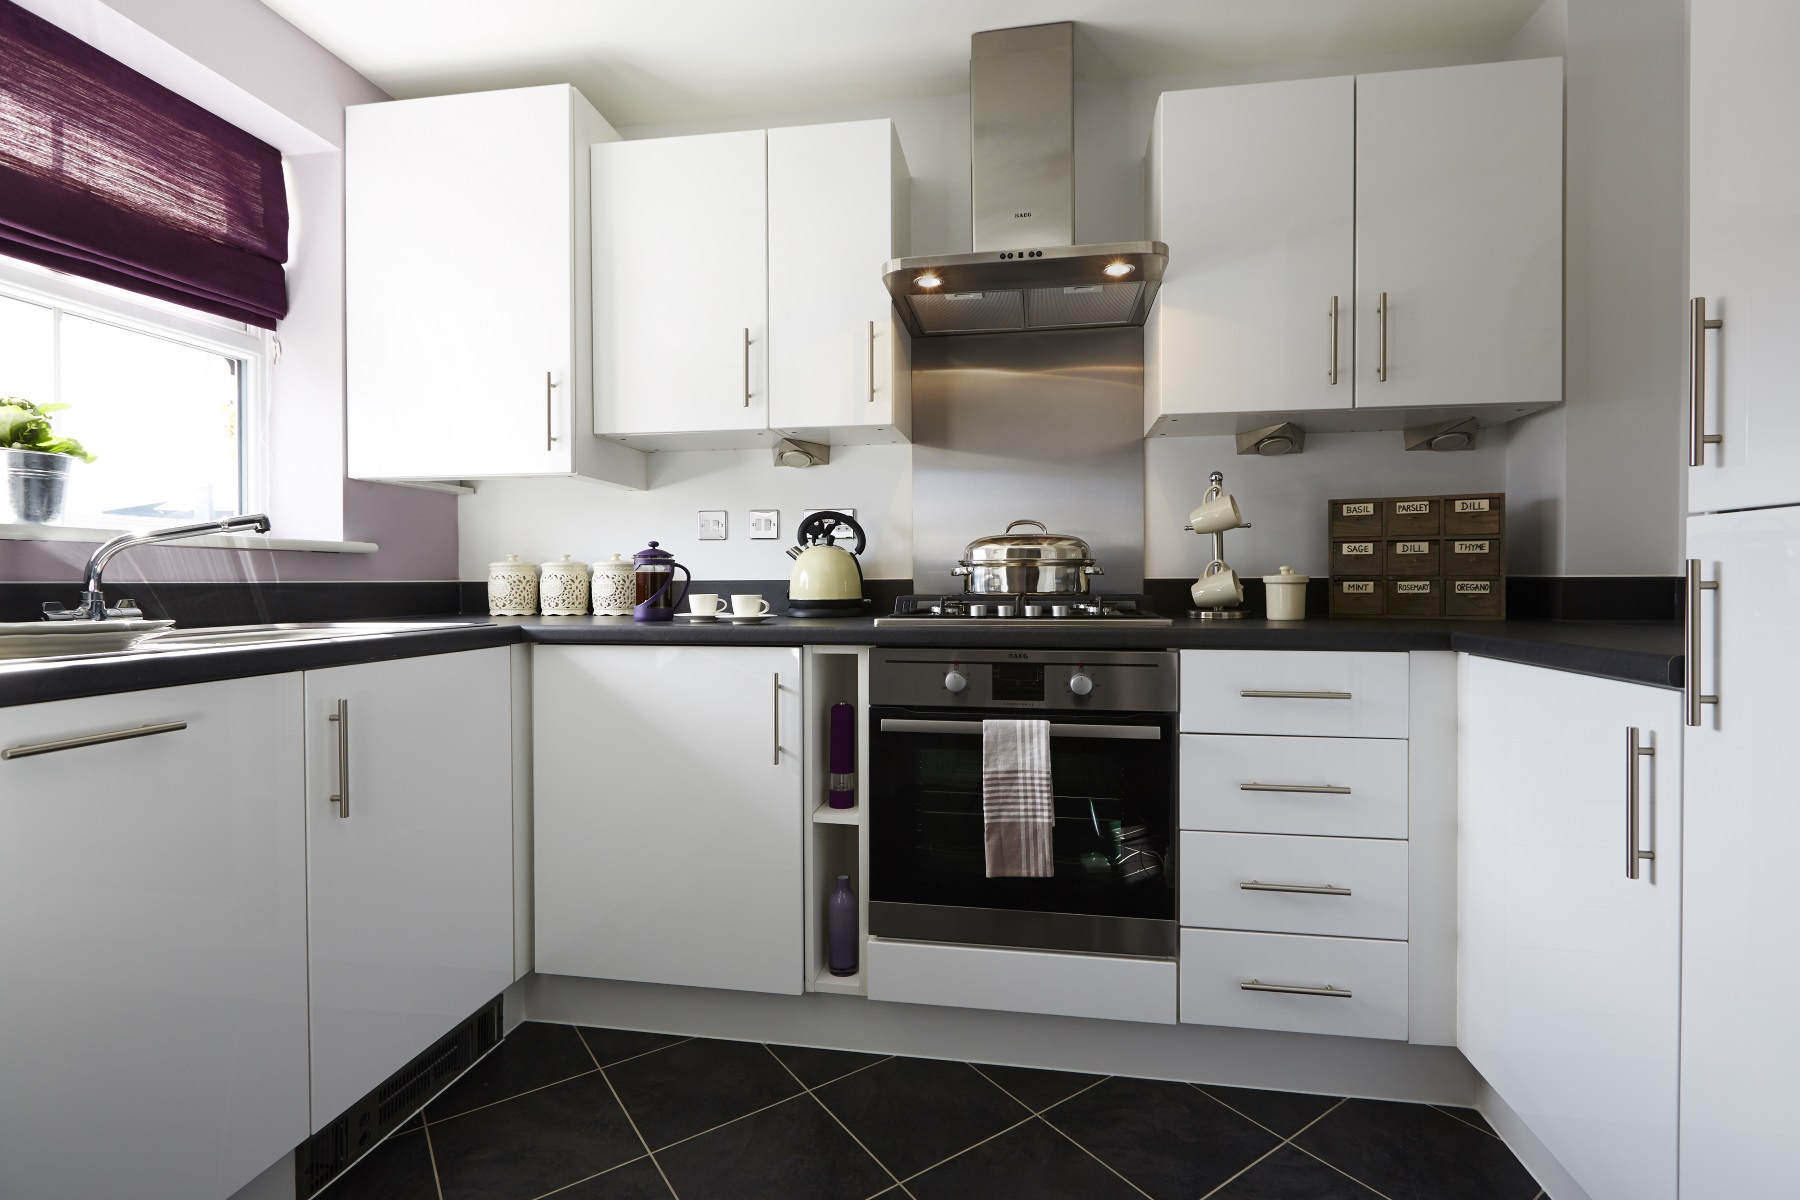 TW Exeter - Plumb Park - Osmington example kitchen